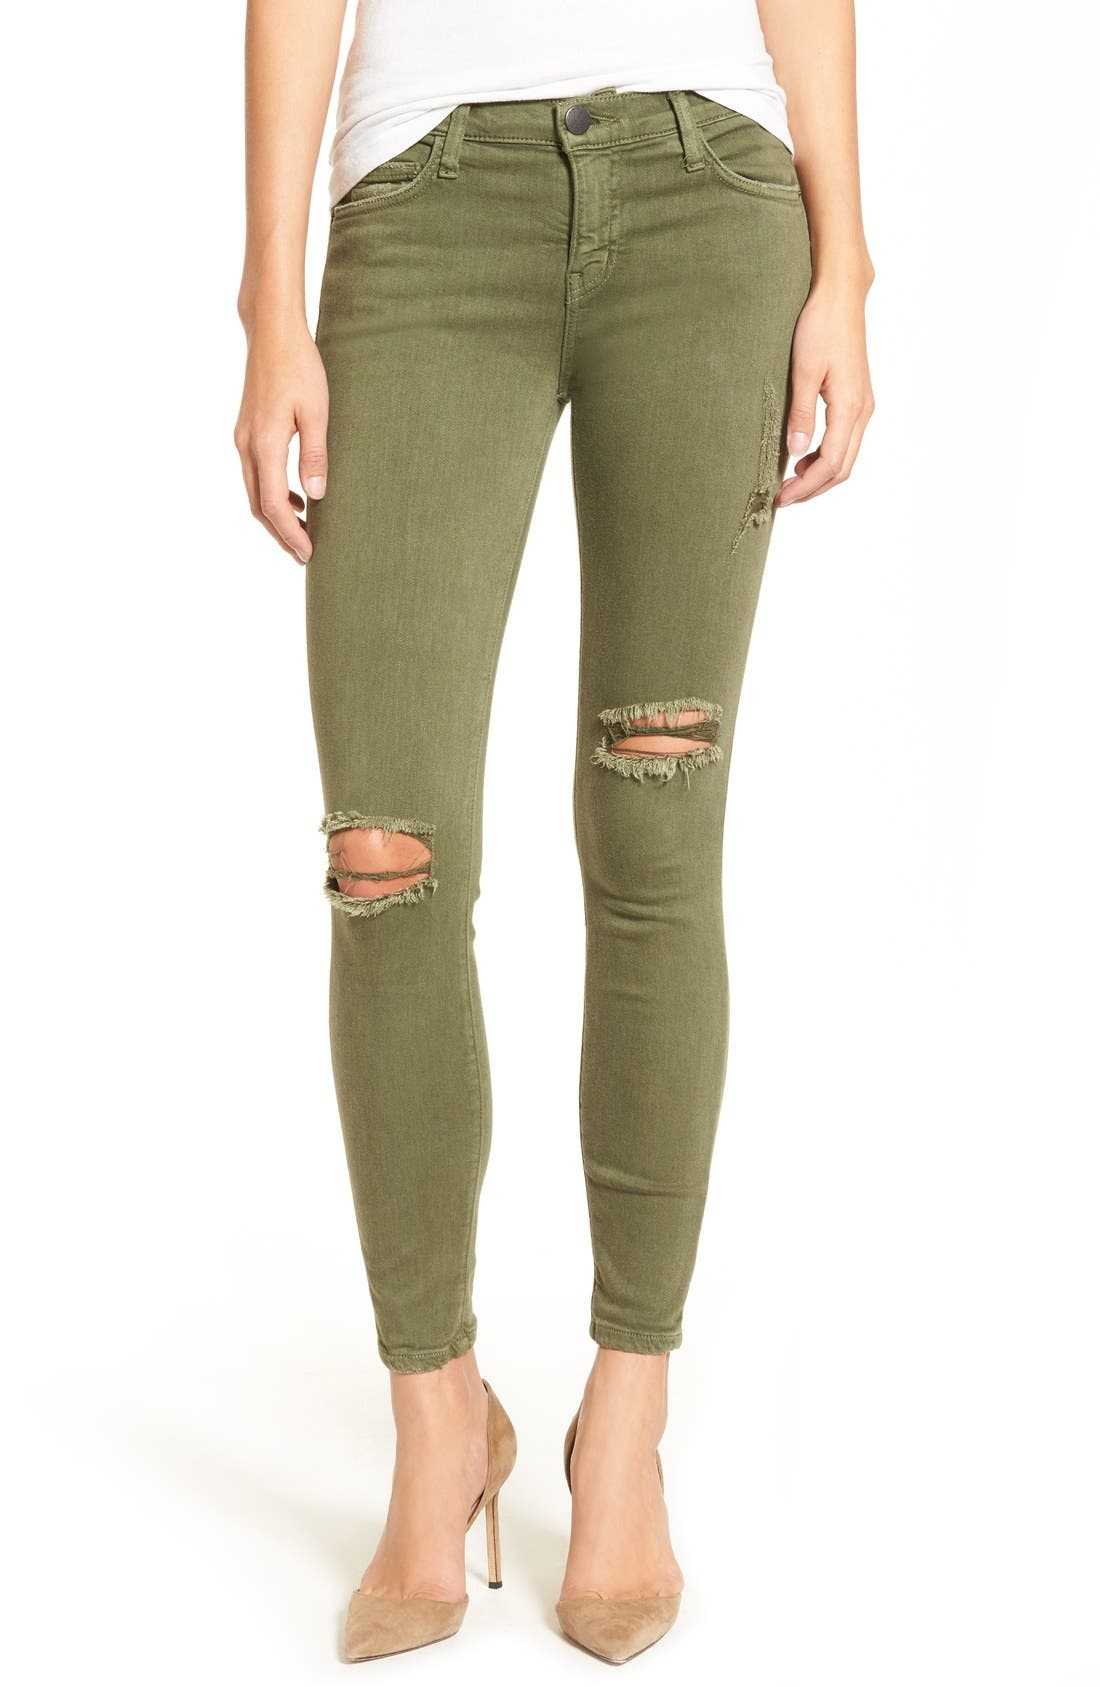 CURRENT/ELLIOTT 'The Stiletto' Crop Skinny Jeans, Main, color, 309